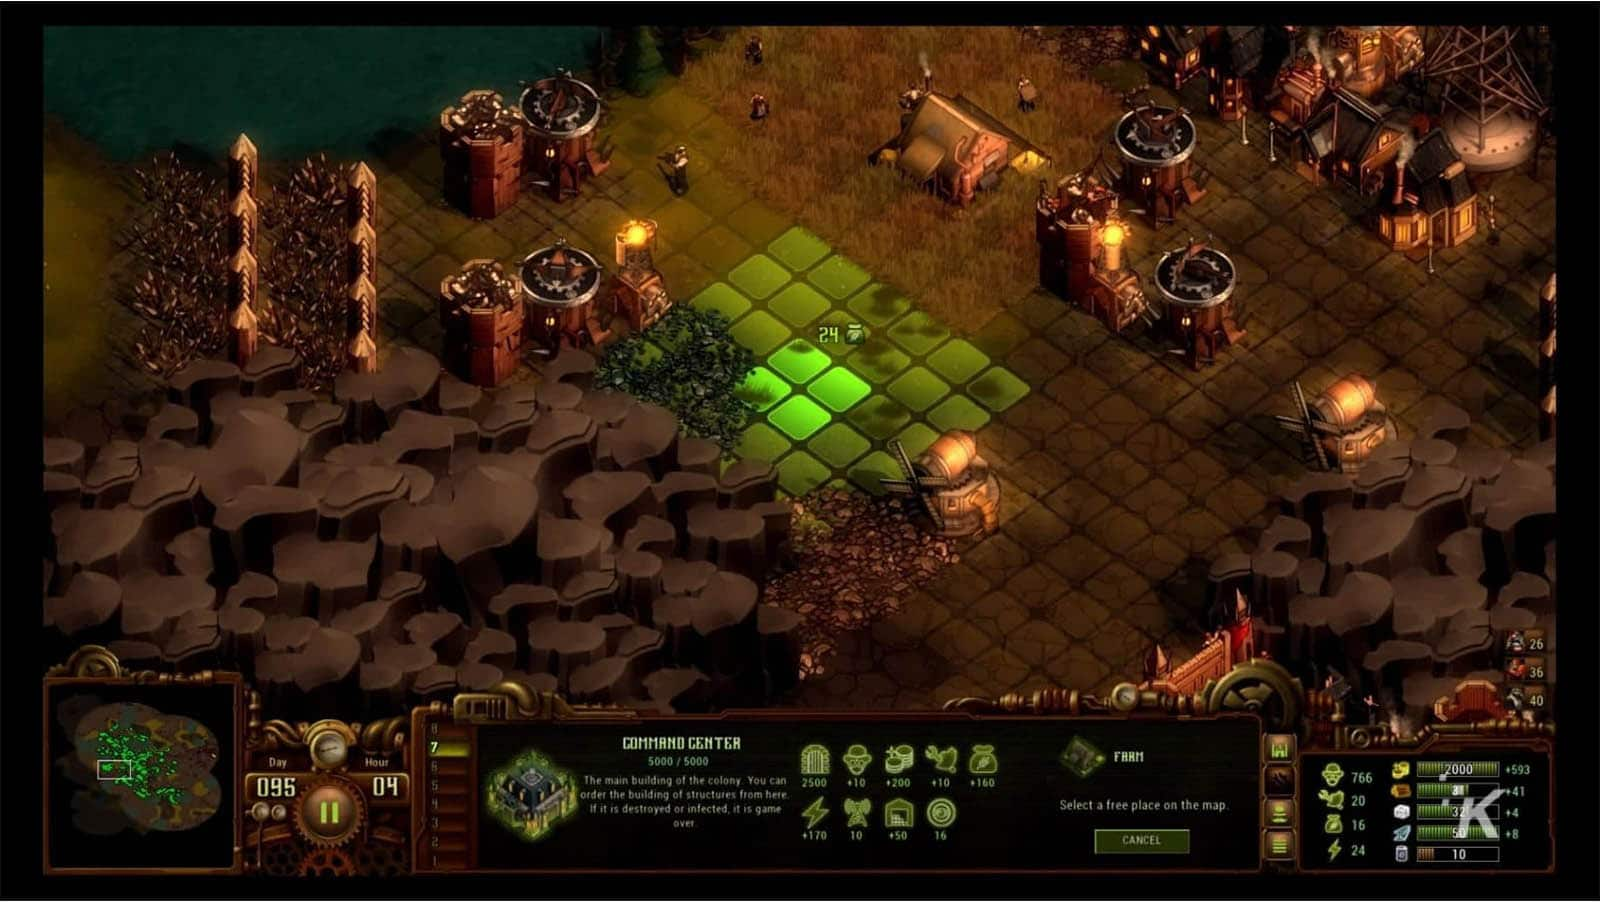 gameplay from tab